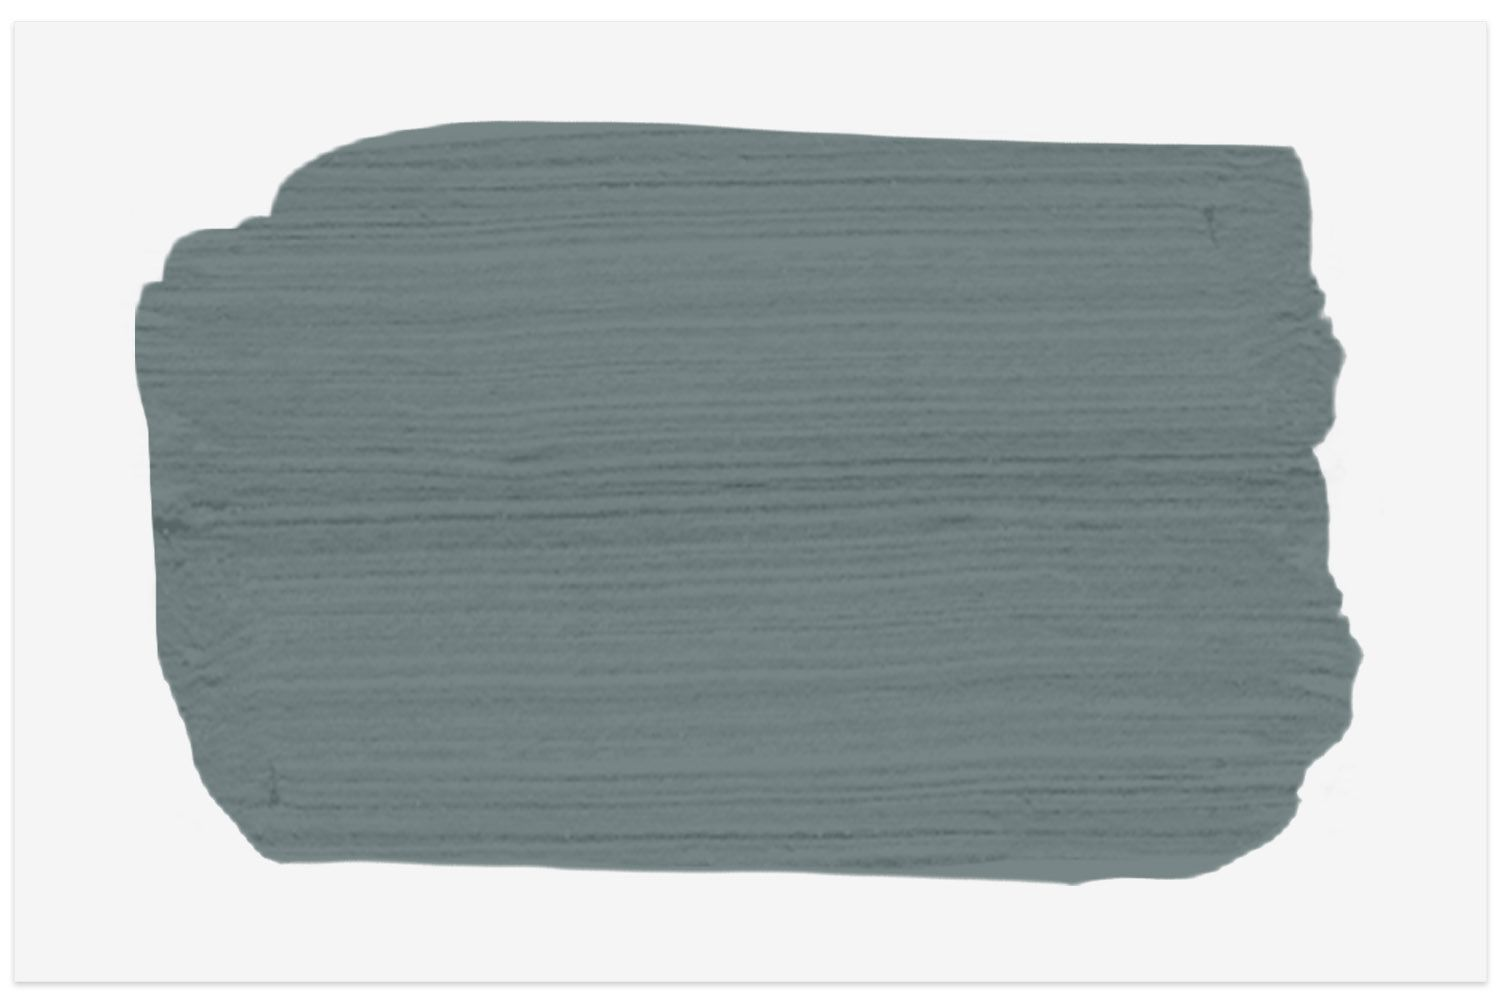 Templeton Gray HC-161 paint swatch from Benjamin Moore